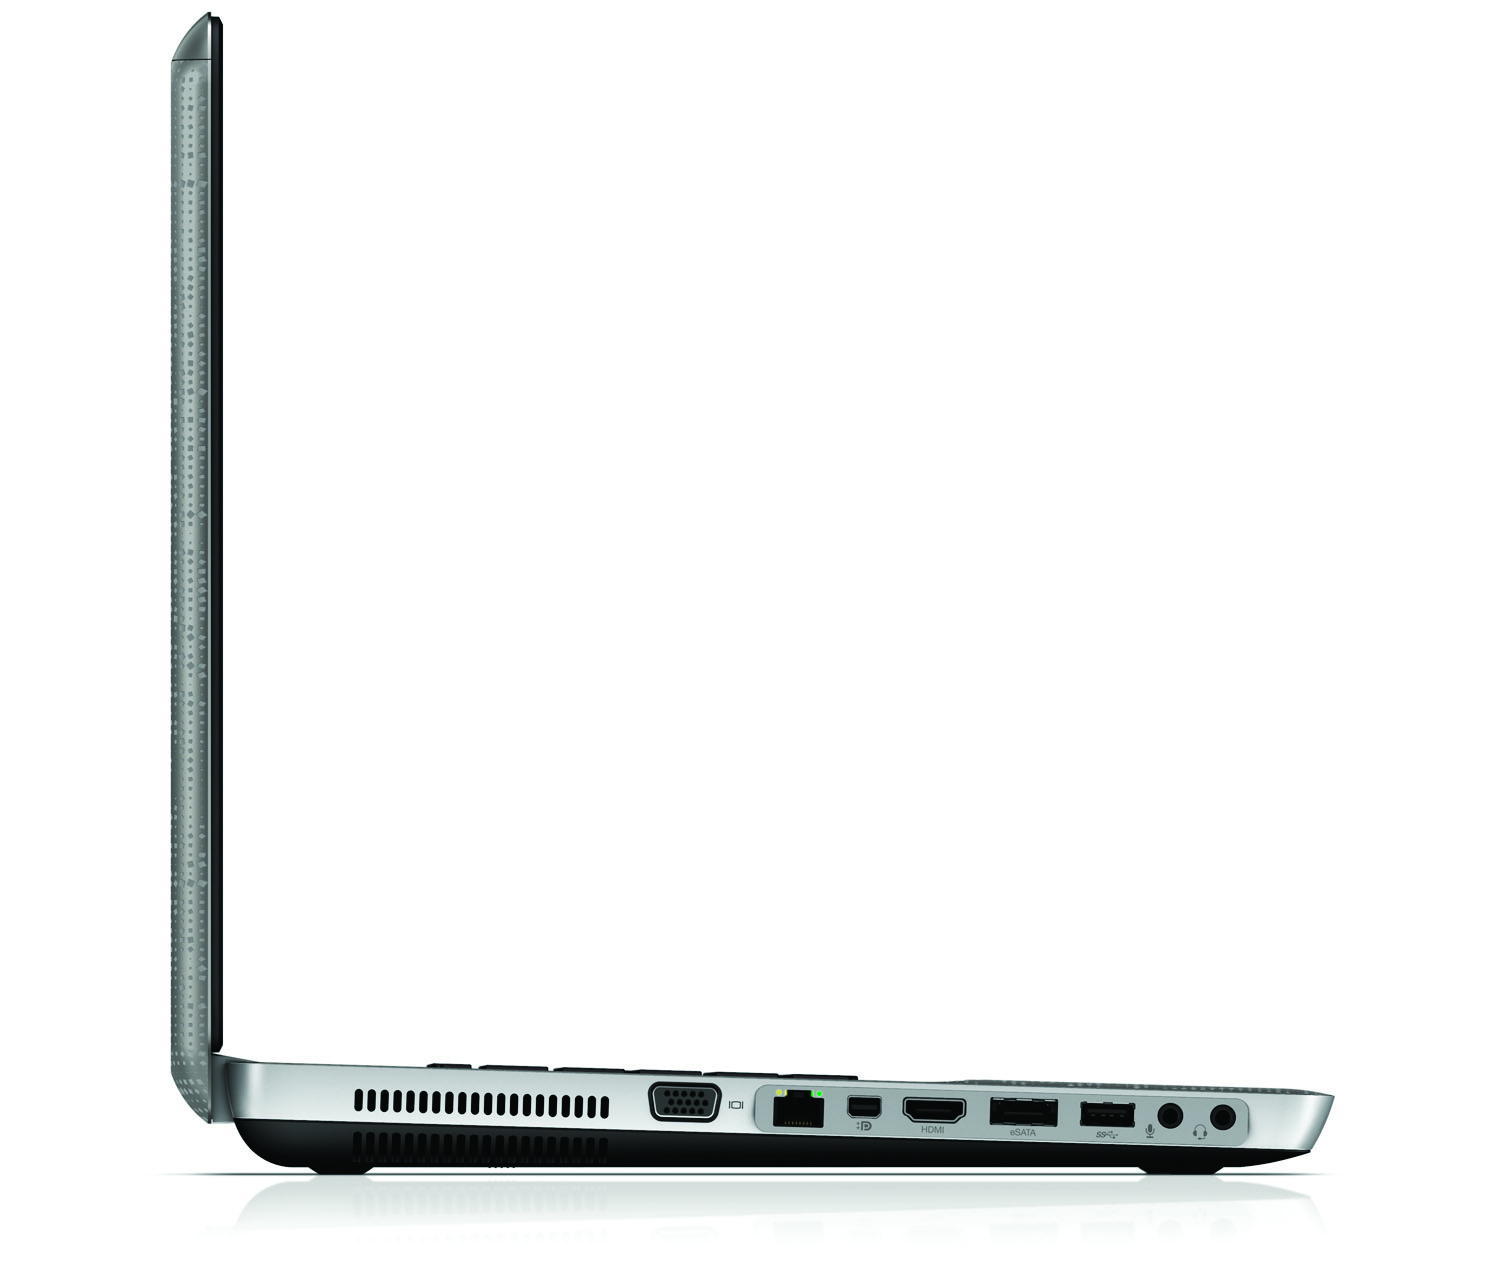 HP Envy 17, right open profile on white